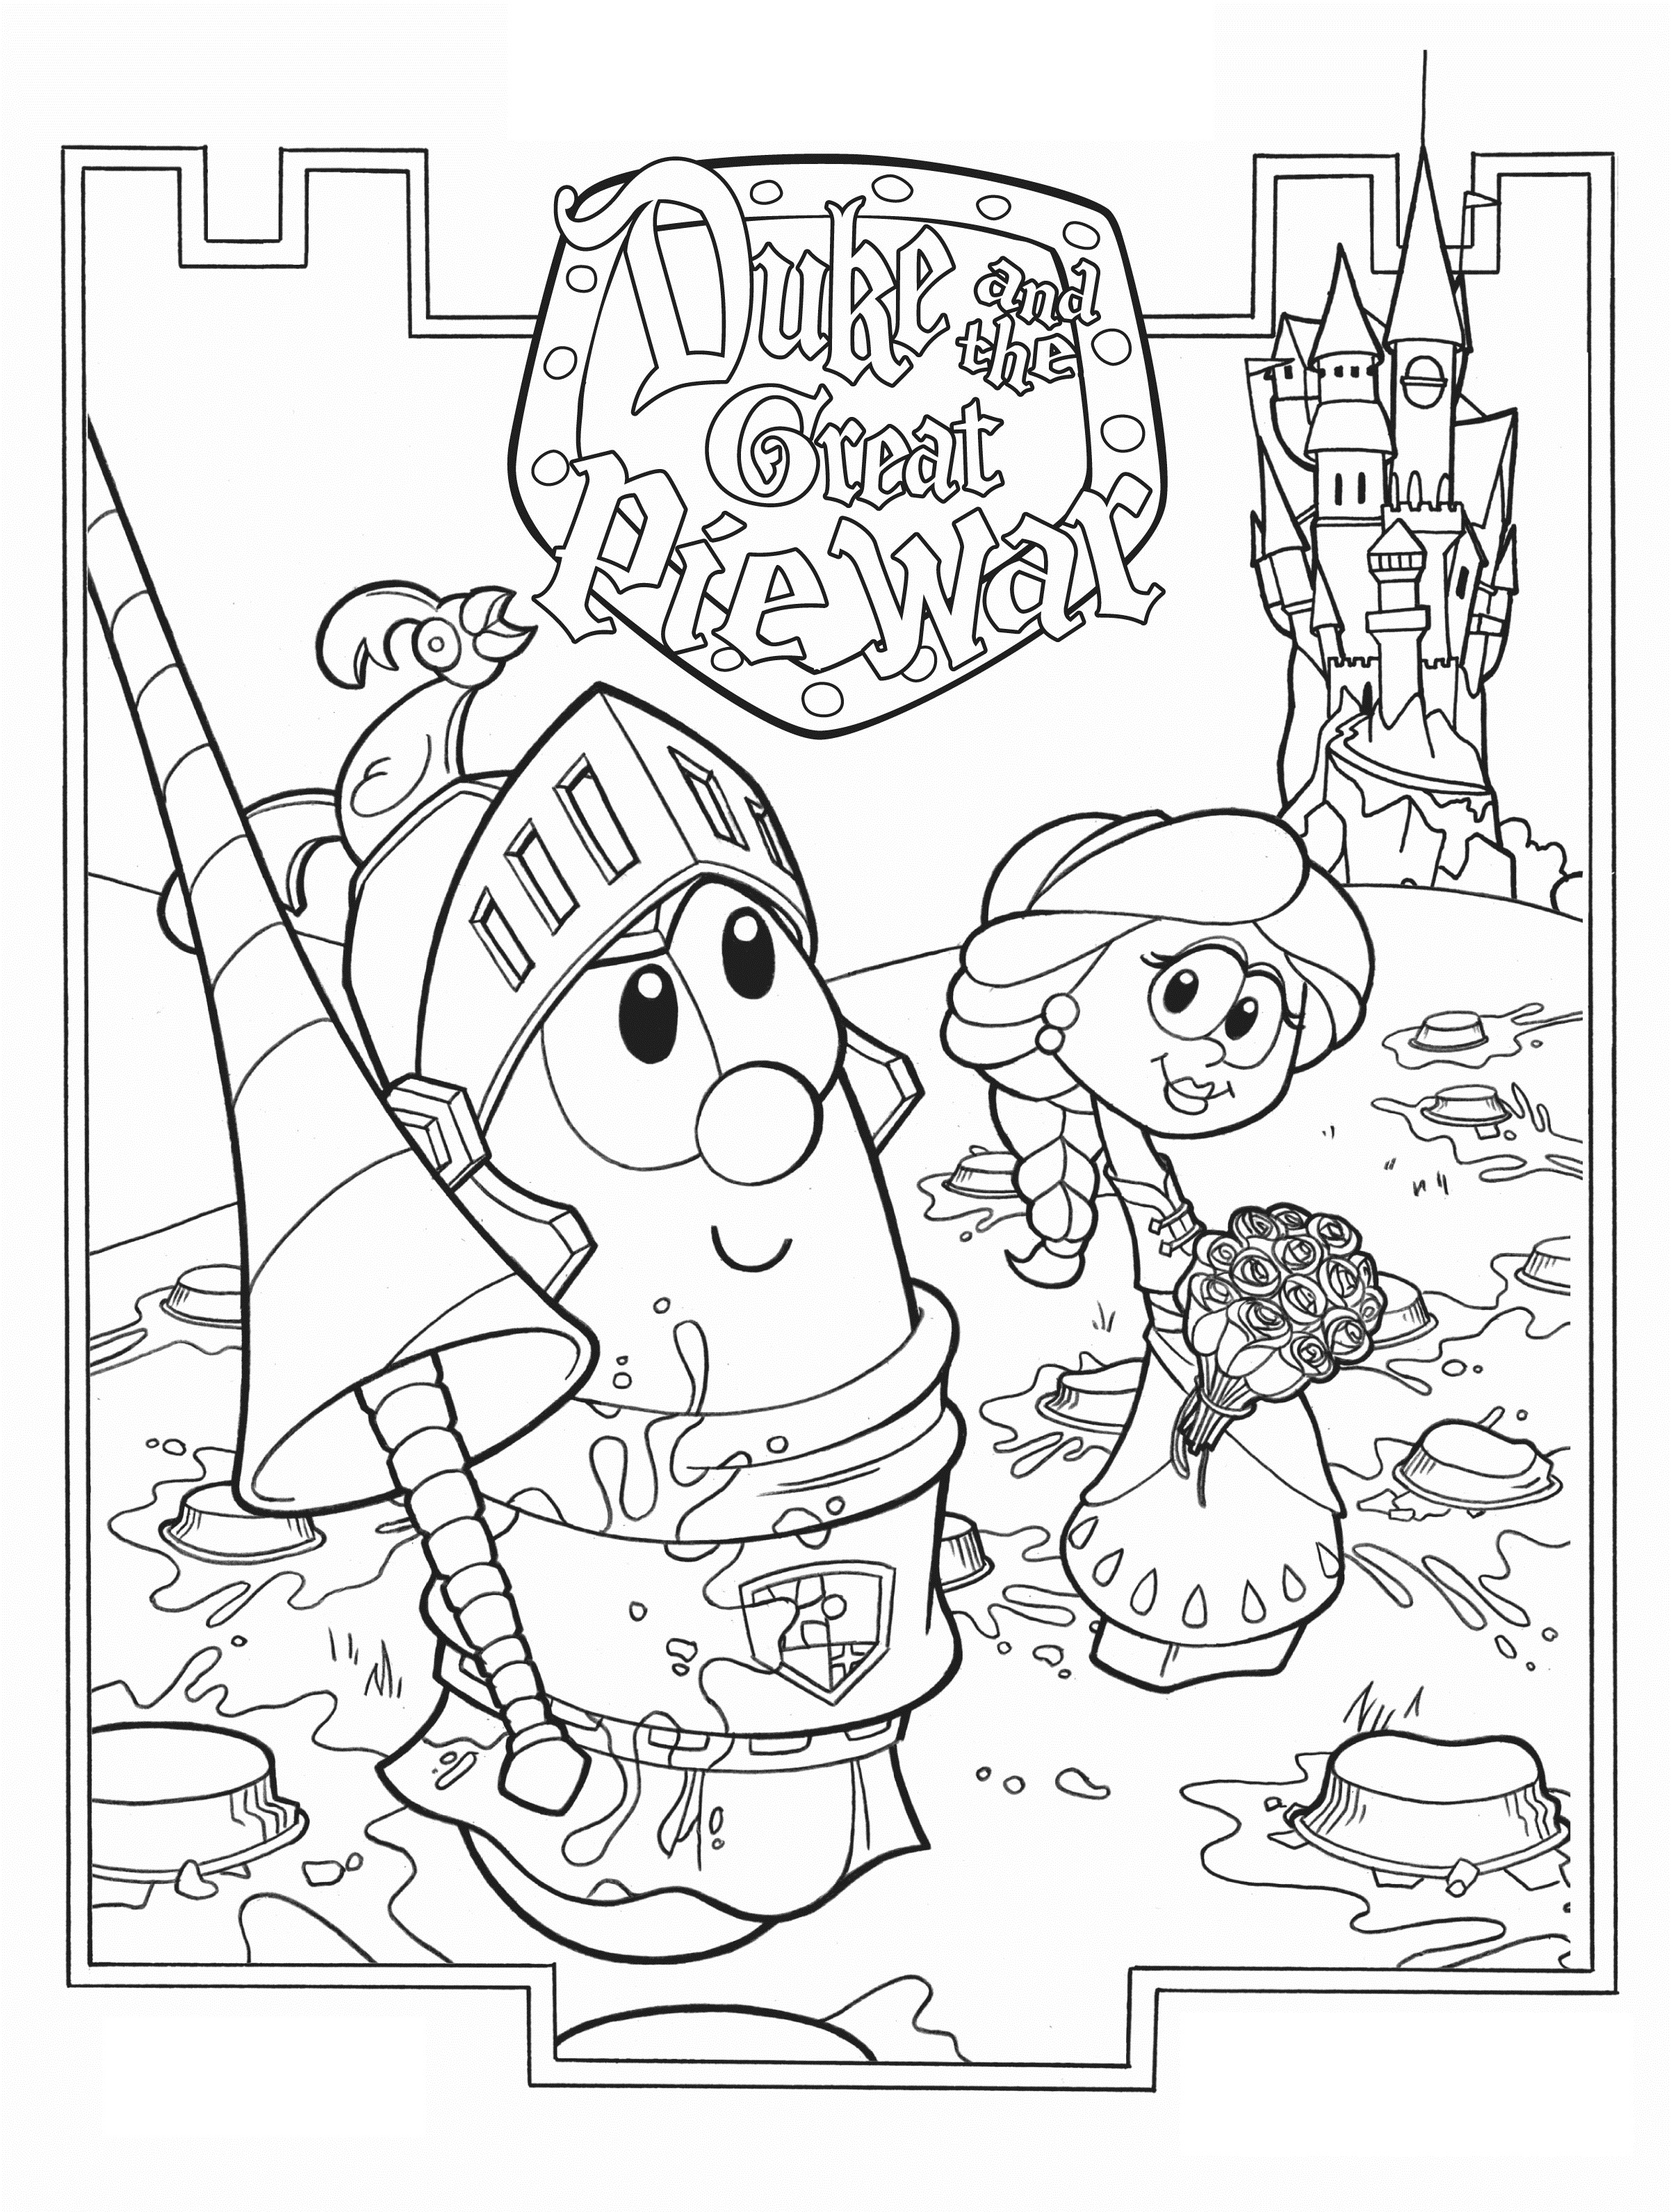 kids coloring pages printable kids page beagles coloring pages printable beagles printable kids coloring pages